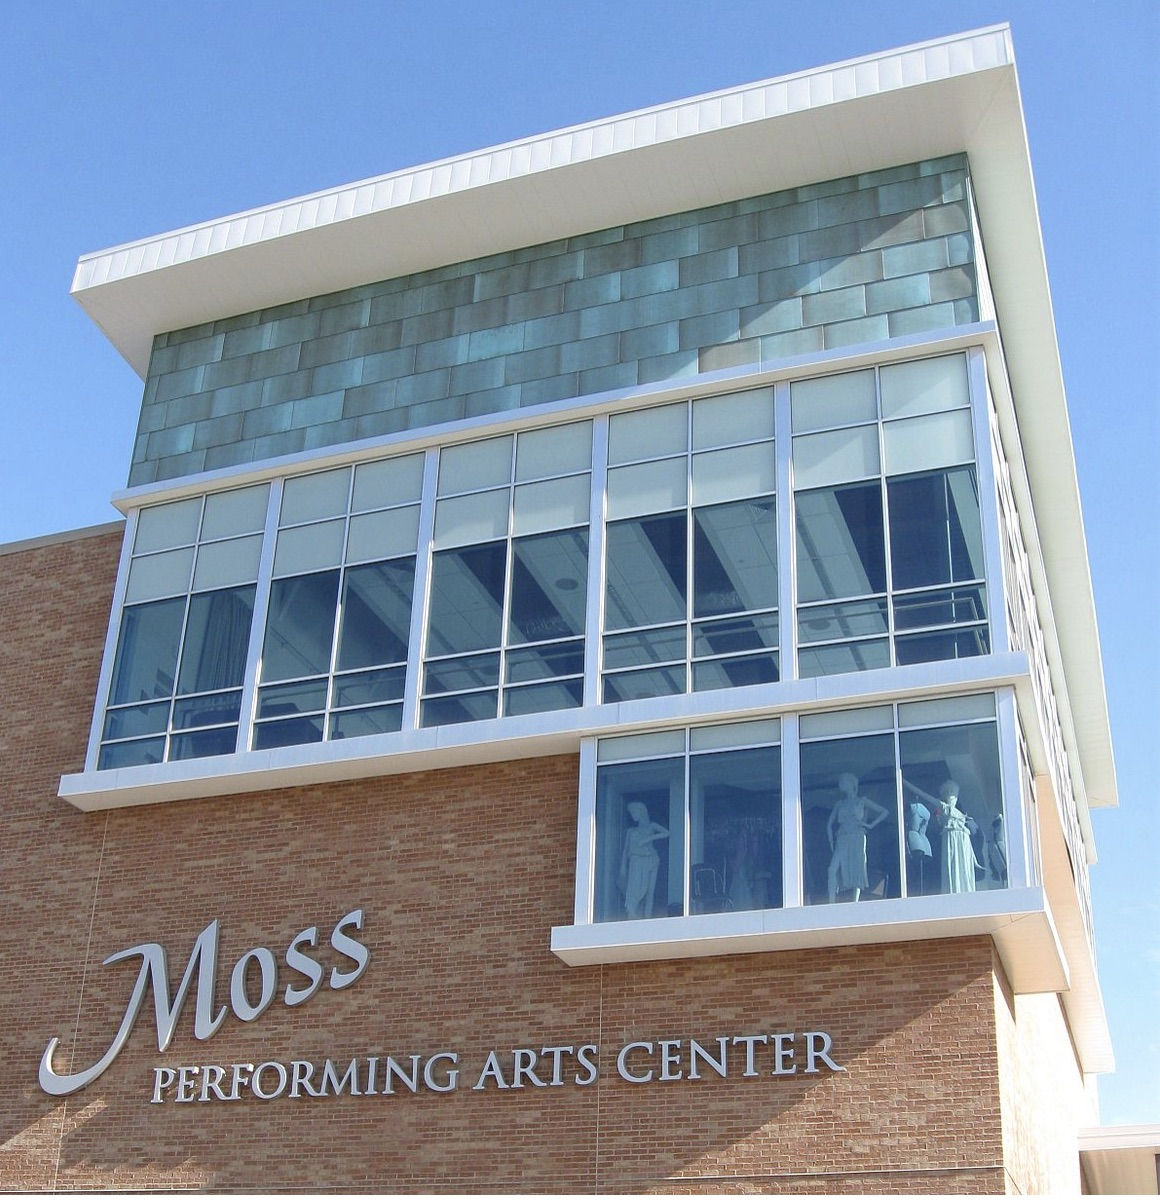 Moss Performing Arts Center